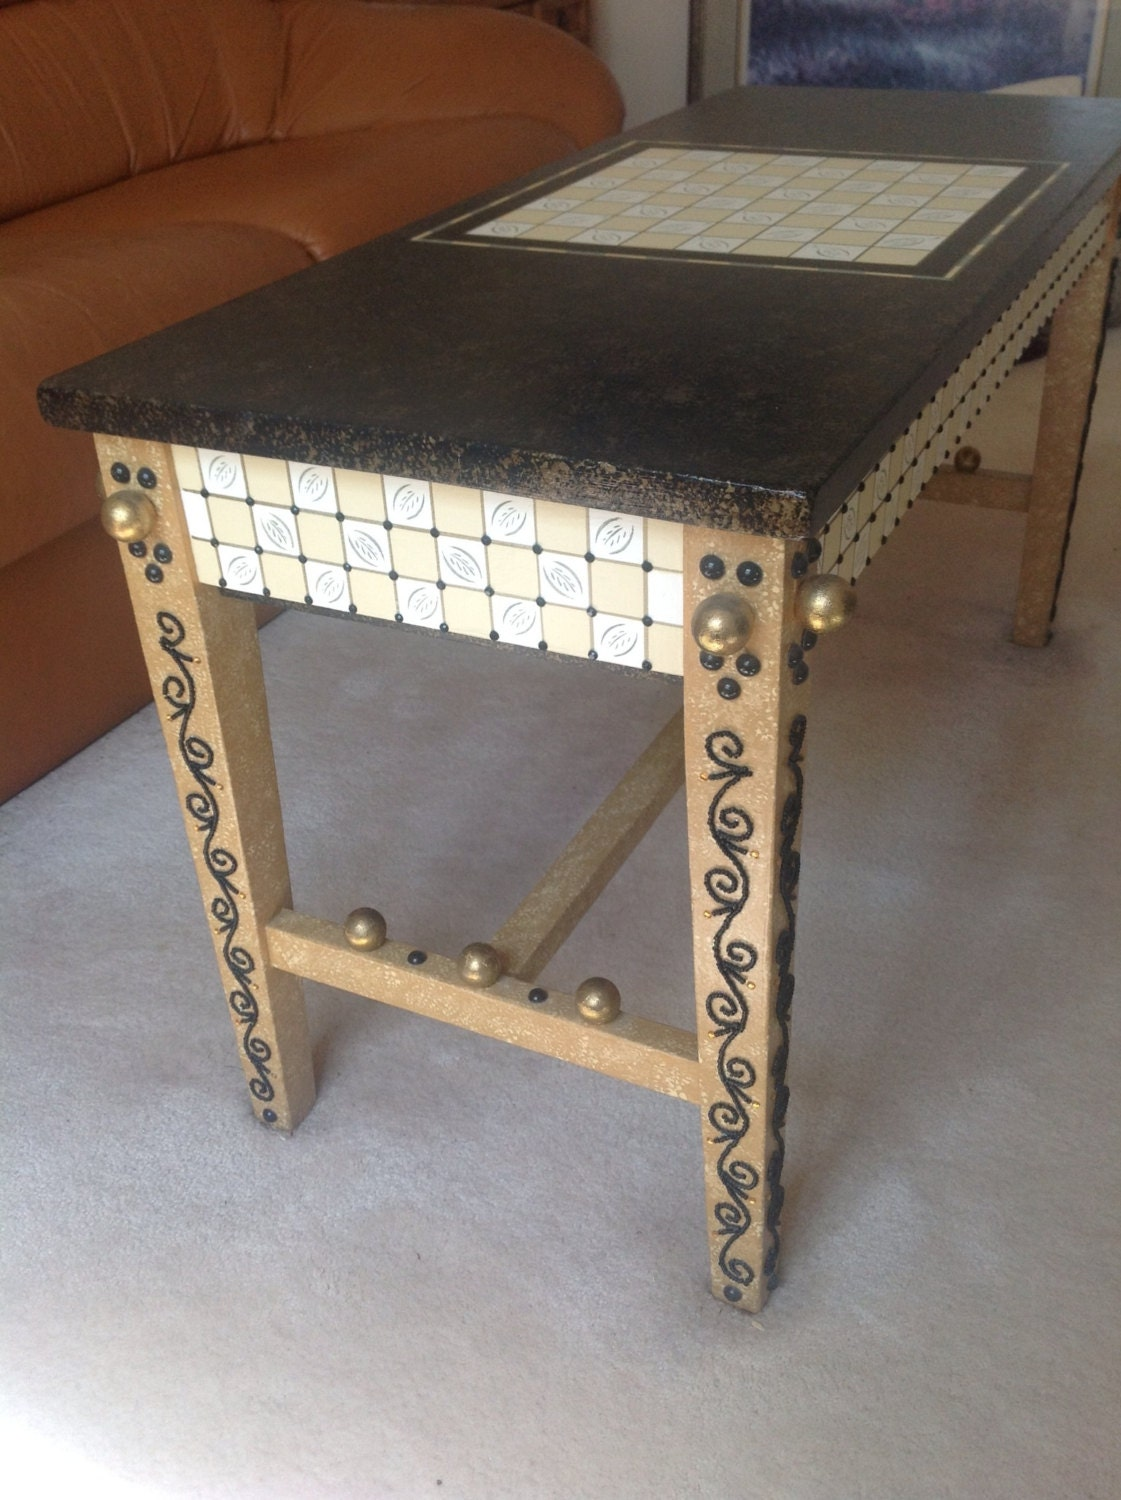 Bench Coffee Table Game Table Storage Table Hand Painted